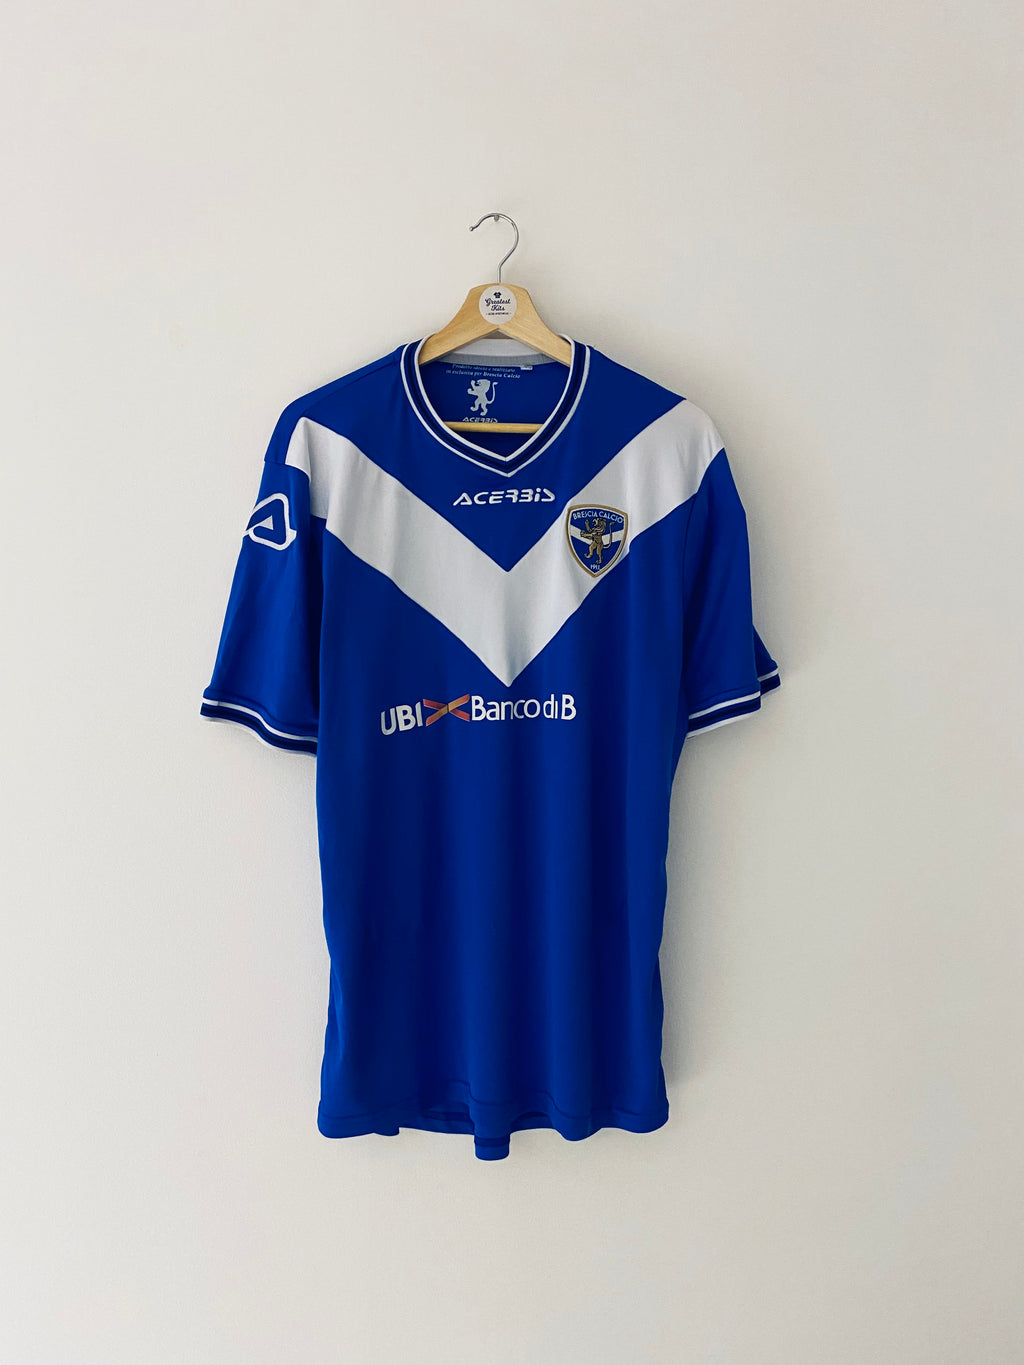 2015/16 Brescia Home Shirt (XXL) 5.5/10